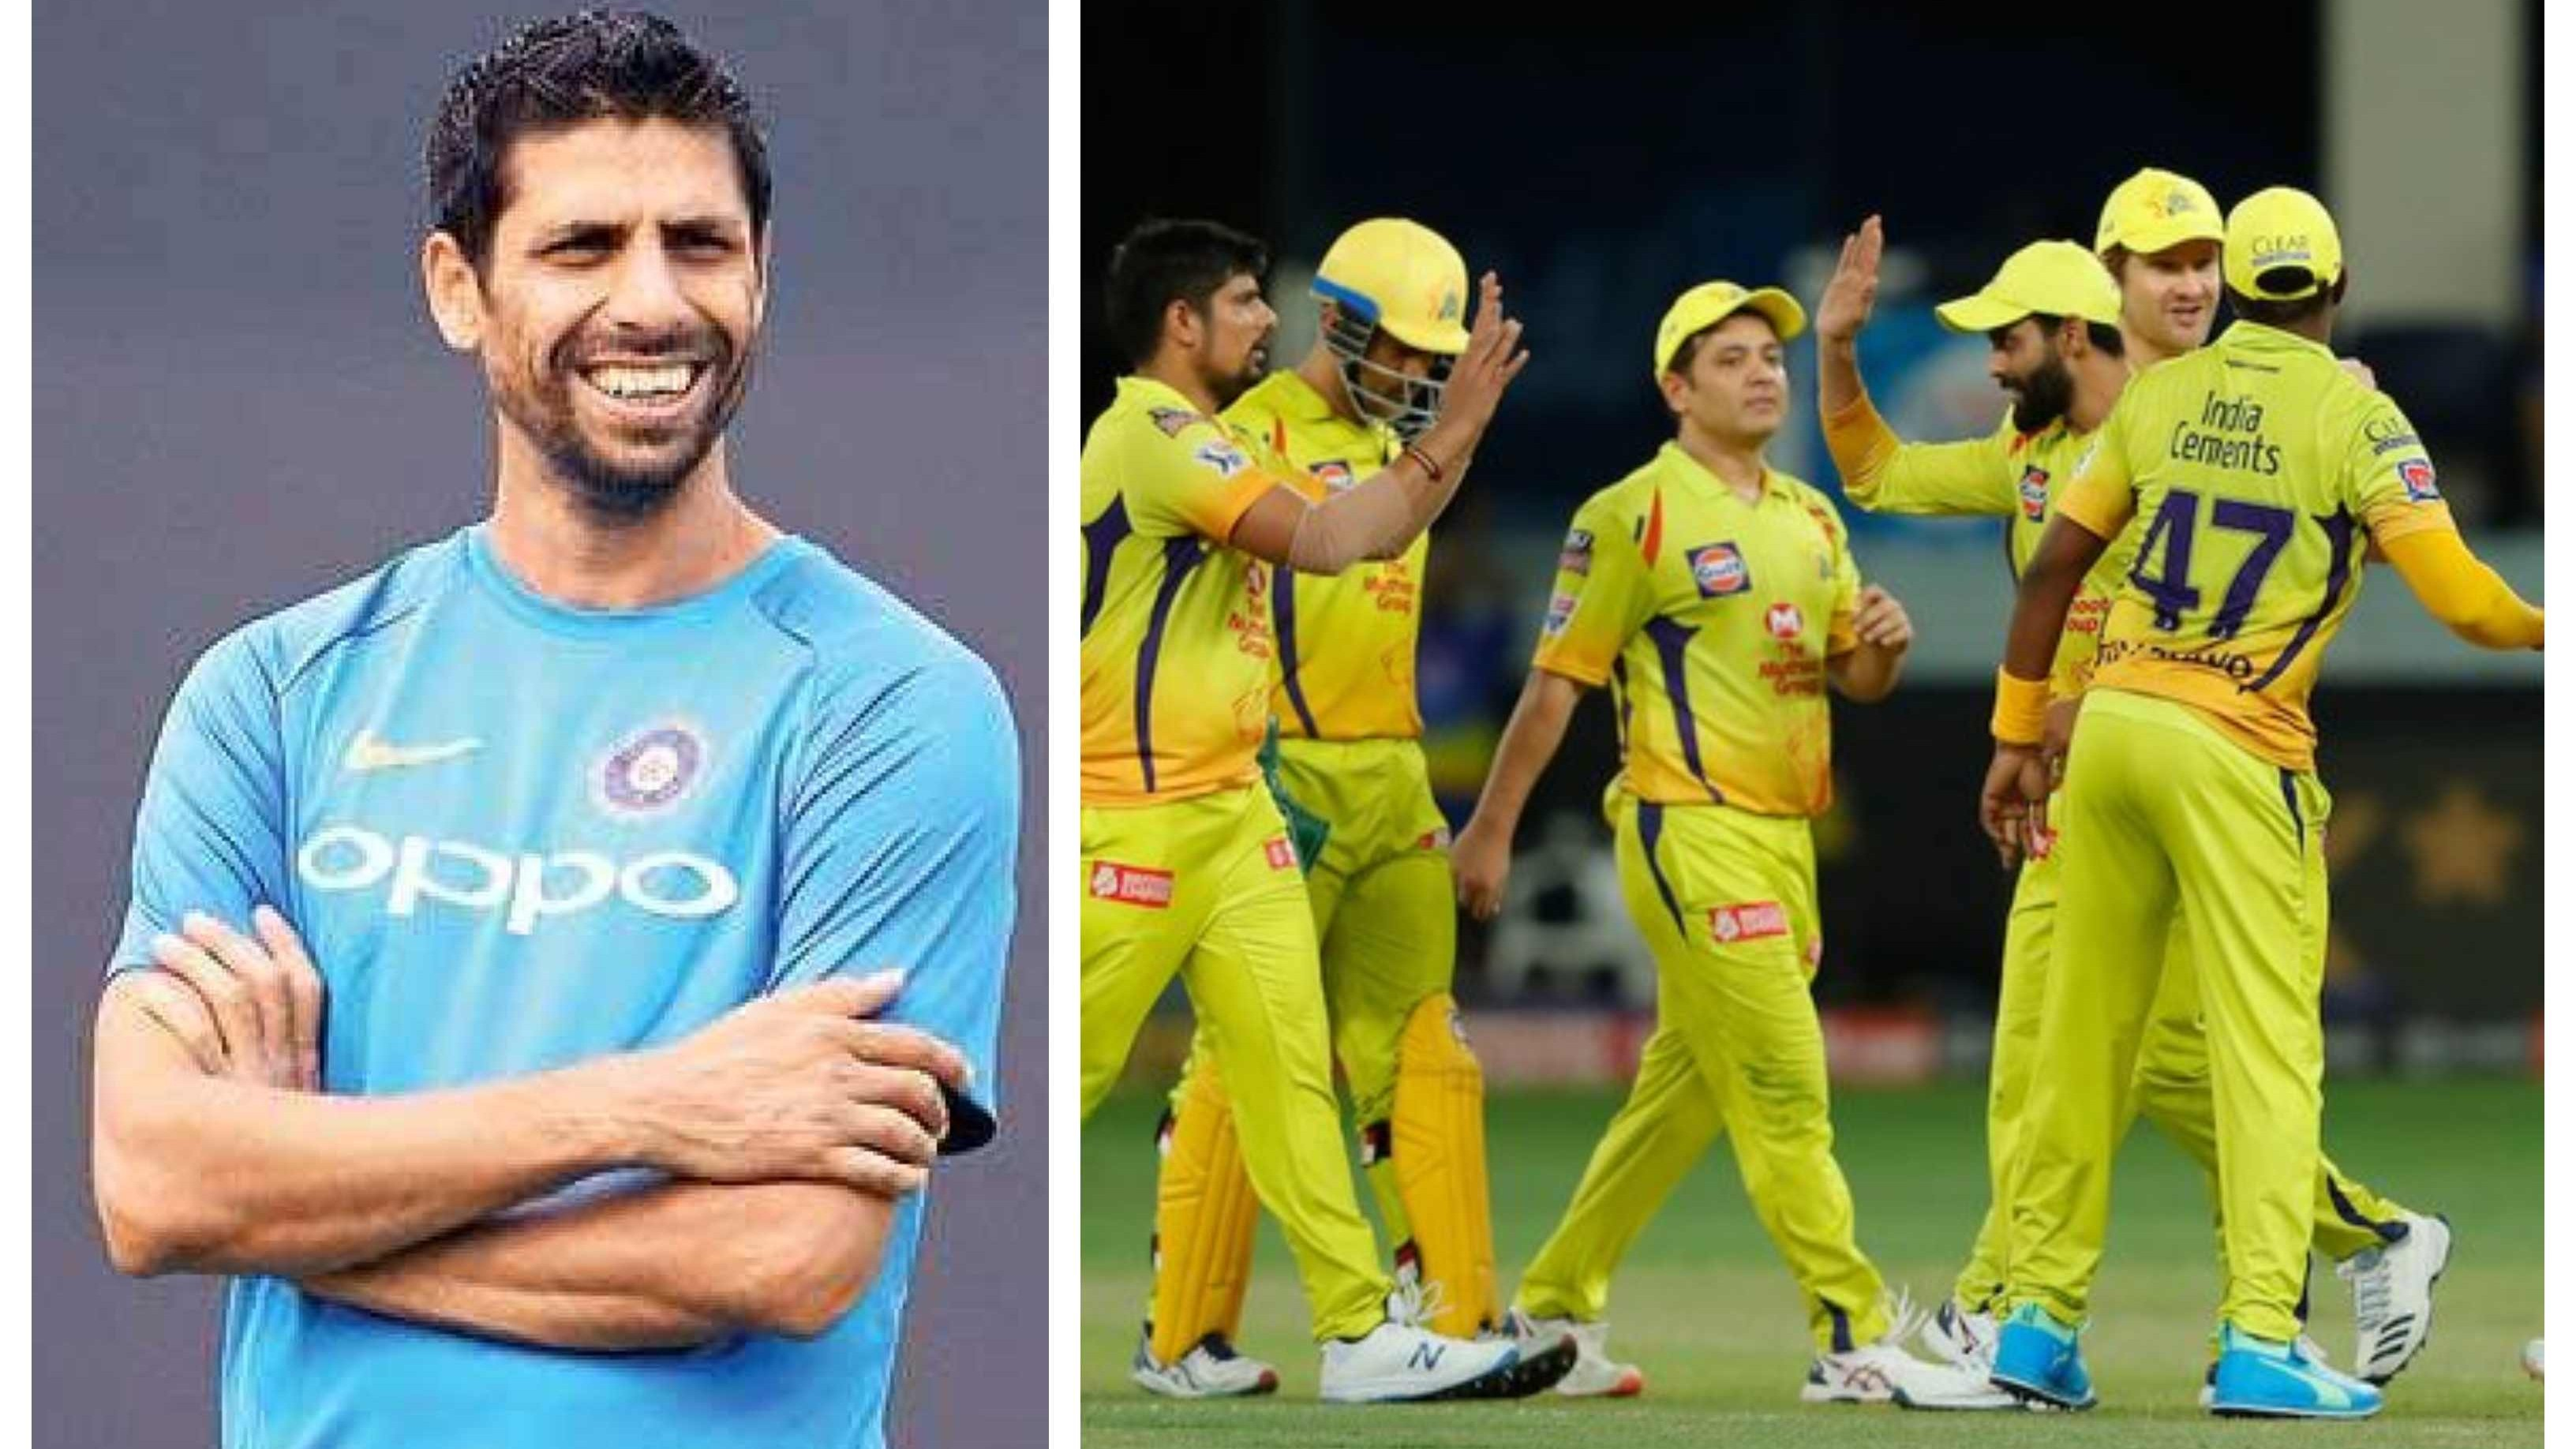 IPL 2020: Ashish Nehra reckons there won't be big reshuffle in the CSK squad ahead of IPL 2021